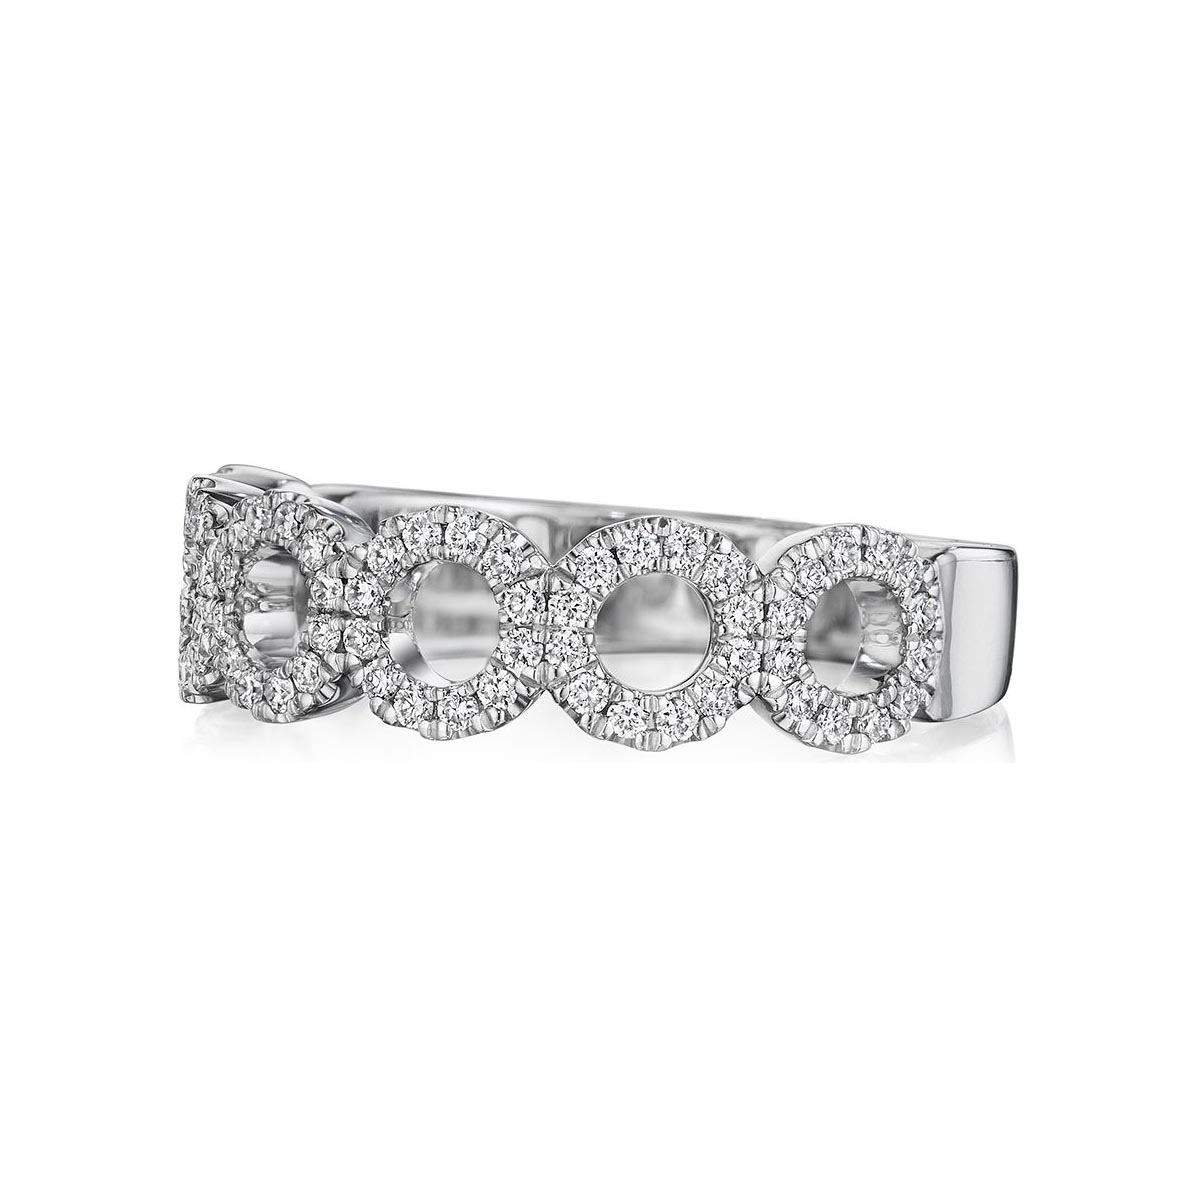 Henri Daussi 18 Karat White Gold Round Cutout Diamond Wedding band